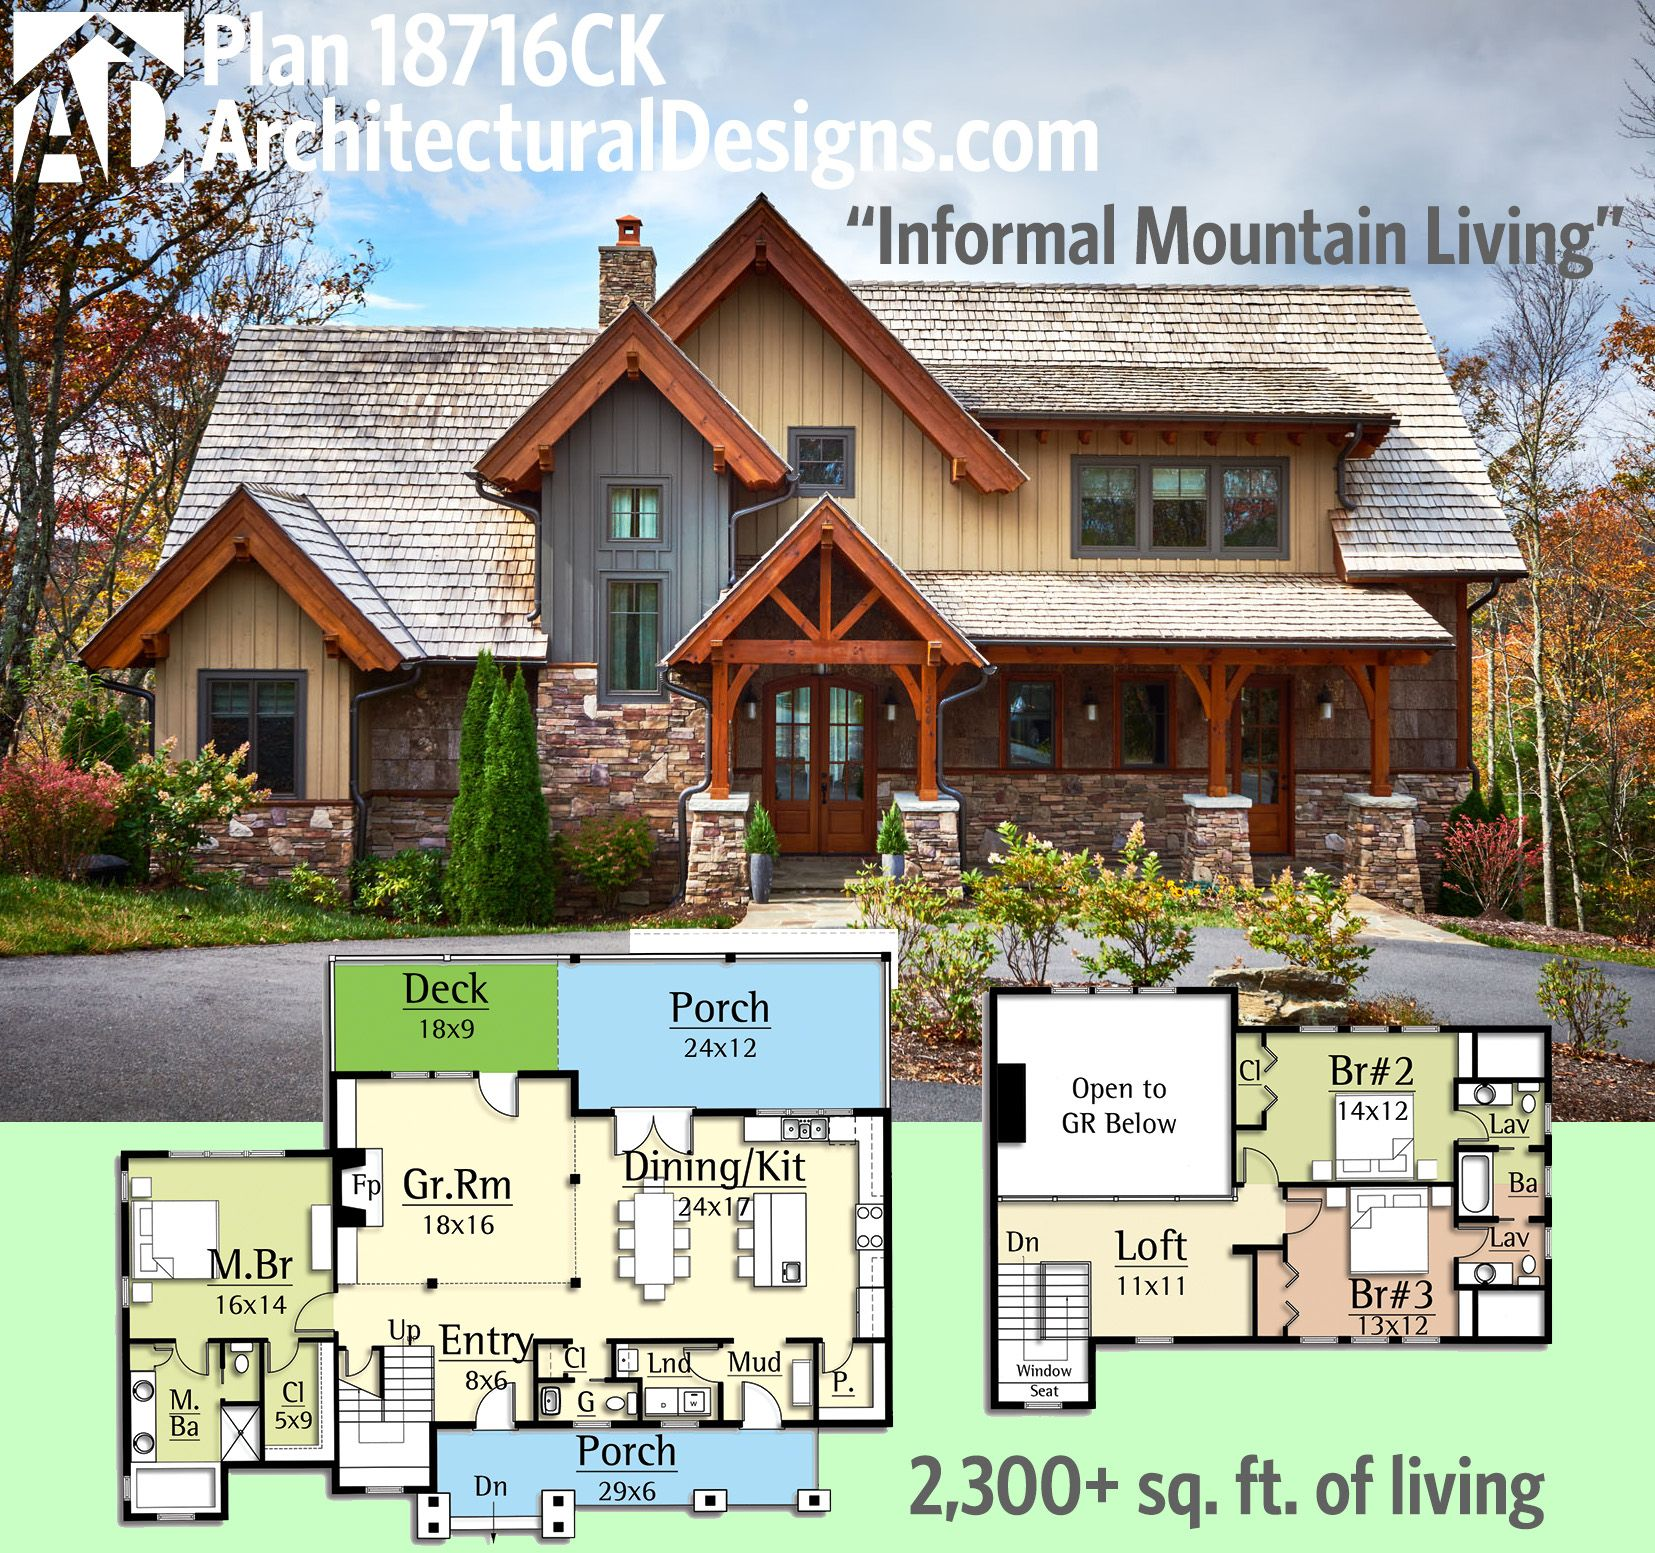 3 Story Open Mountain House Floor Plan: Plan 18716CK: Informal Mountain Living